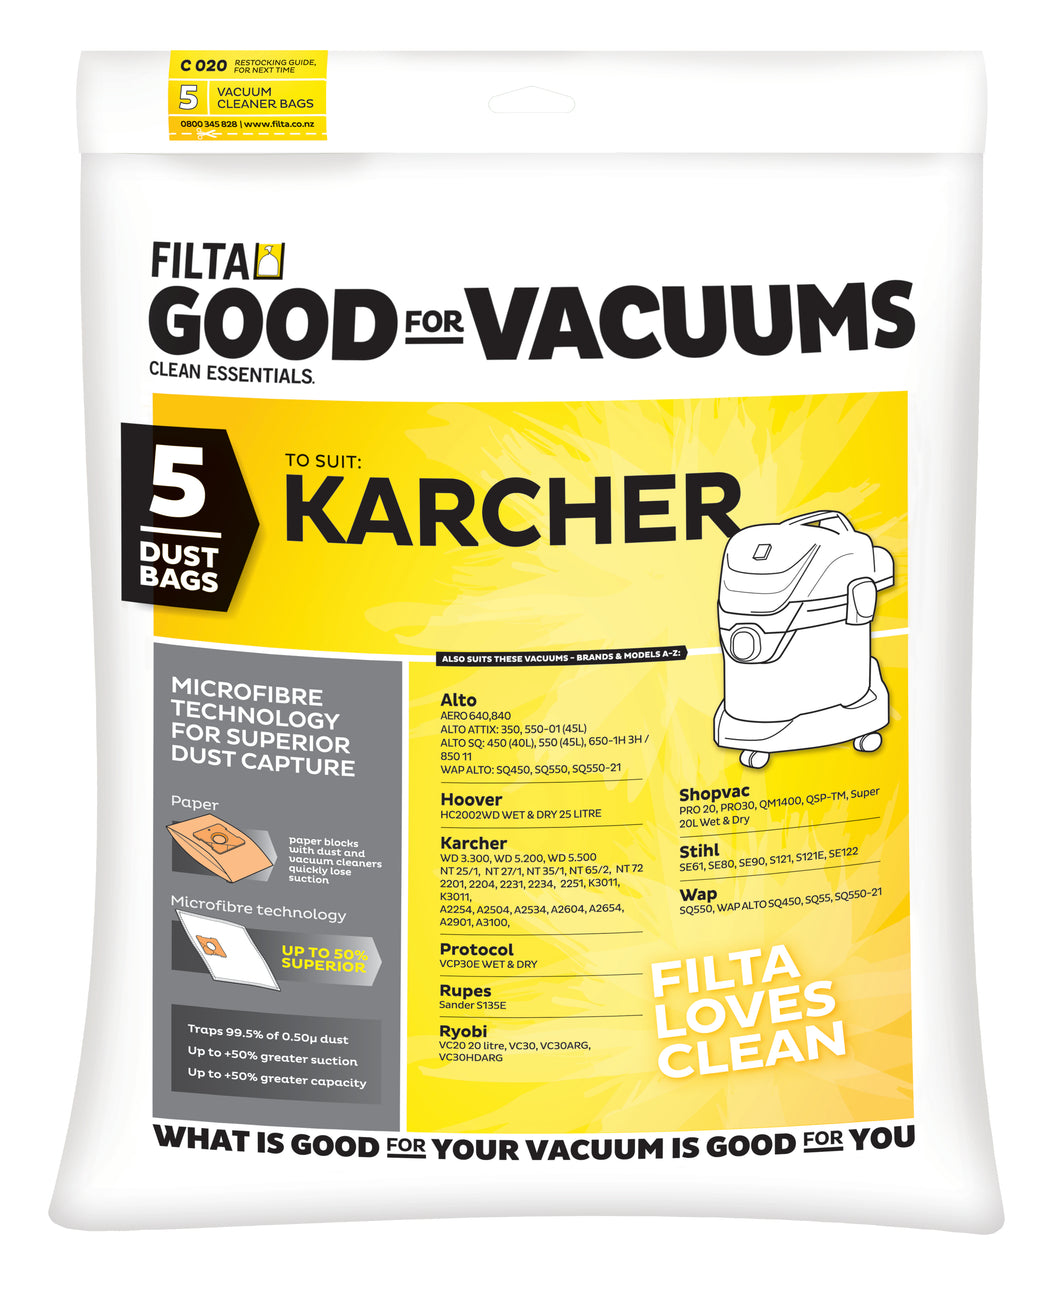 FILTA KARCHER /STIHL MICROFIBRE VACUUM CLEANER BAGS 5 Pack - Sold by Single Unit in multiples of 1 Single Unit (C020)